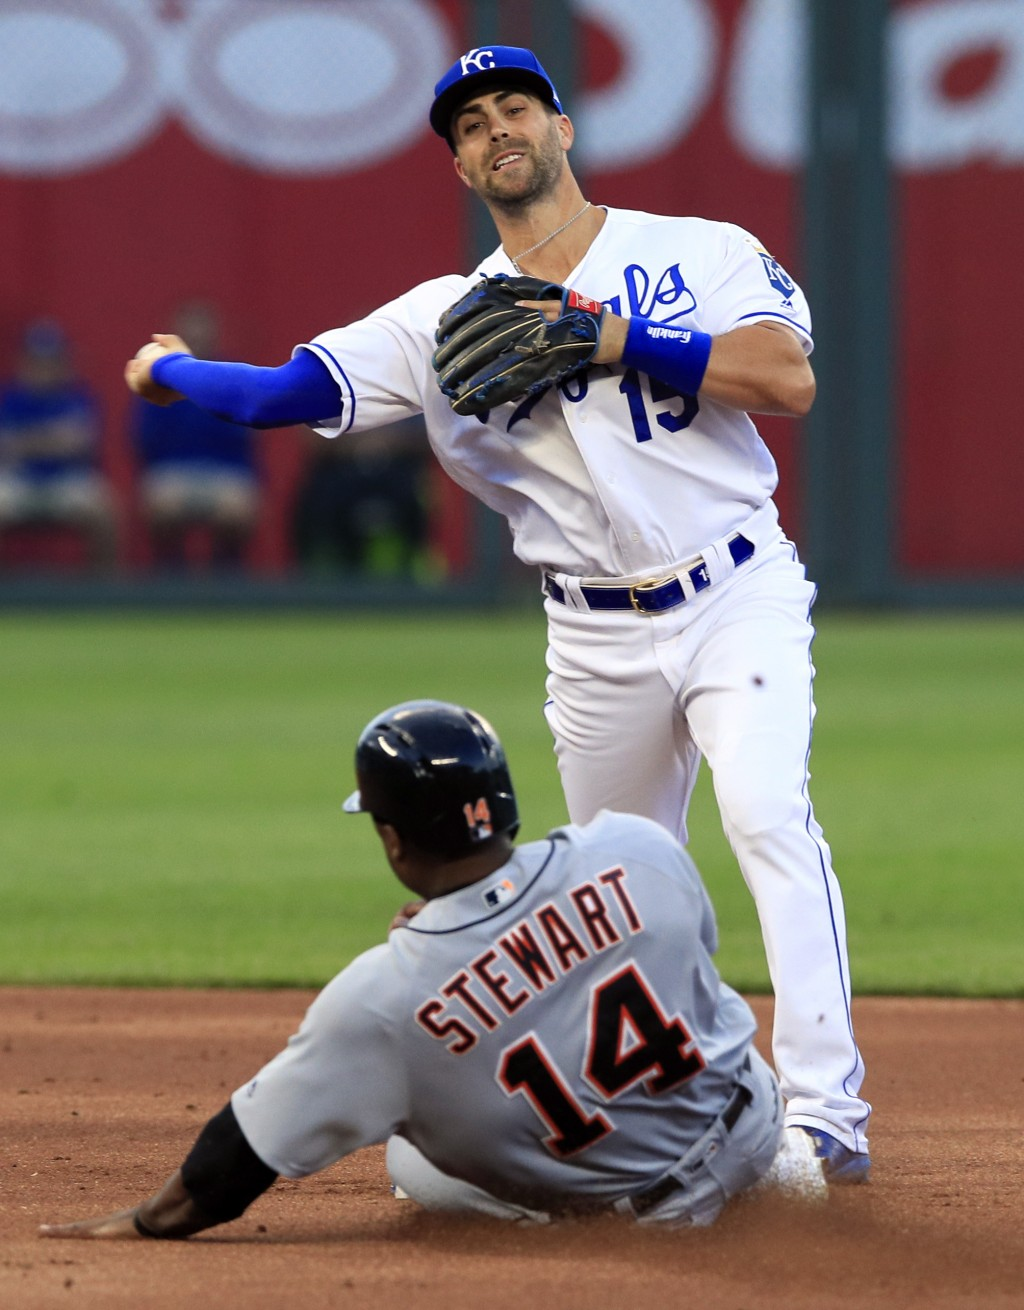 Kansas City Royals second baseman Whit Merrifield (15) forces out Detroit Tigers' Christin Stewart (14) and throws to first during the first inning of